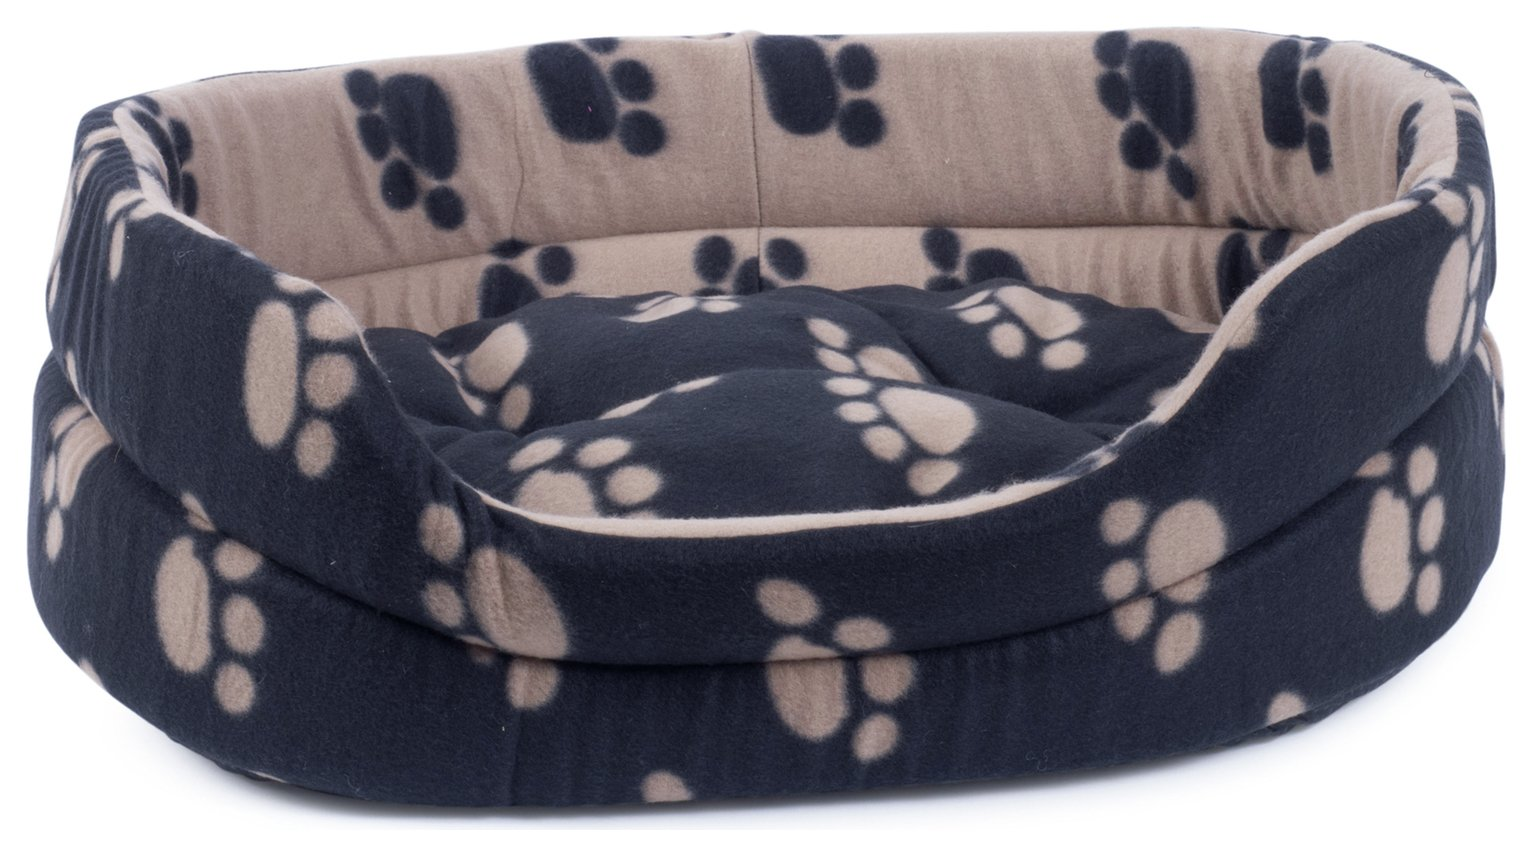 Petface Archie's Small Oval Dog/Puppy Bed - Black